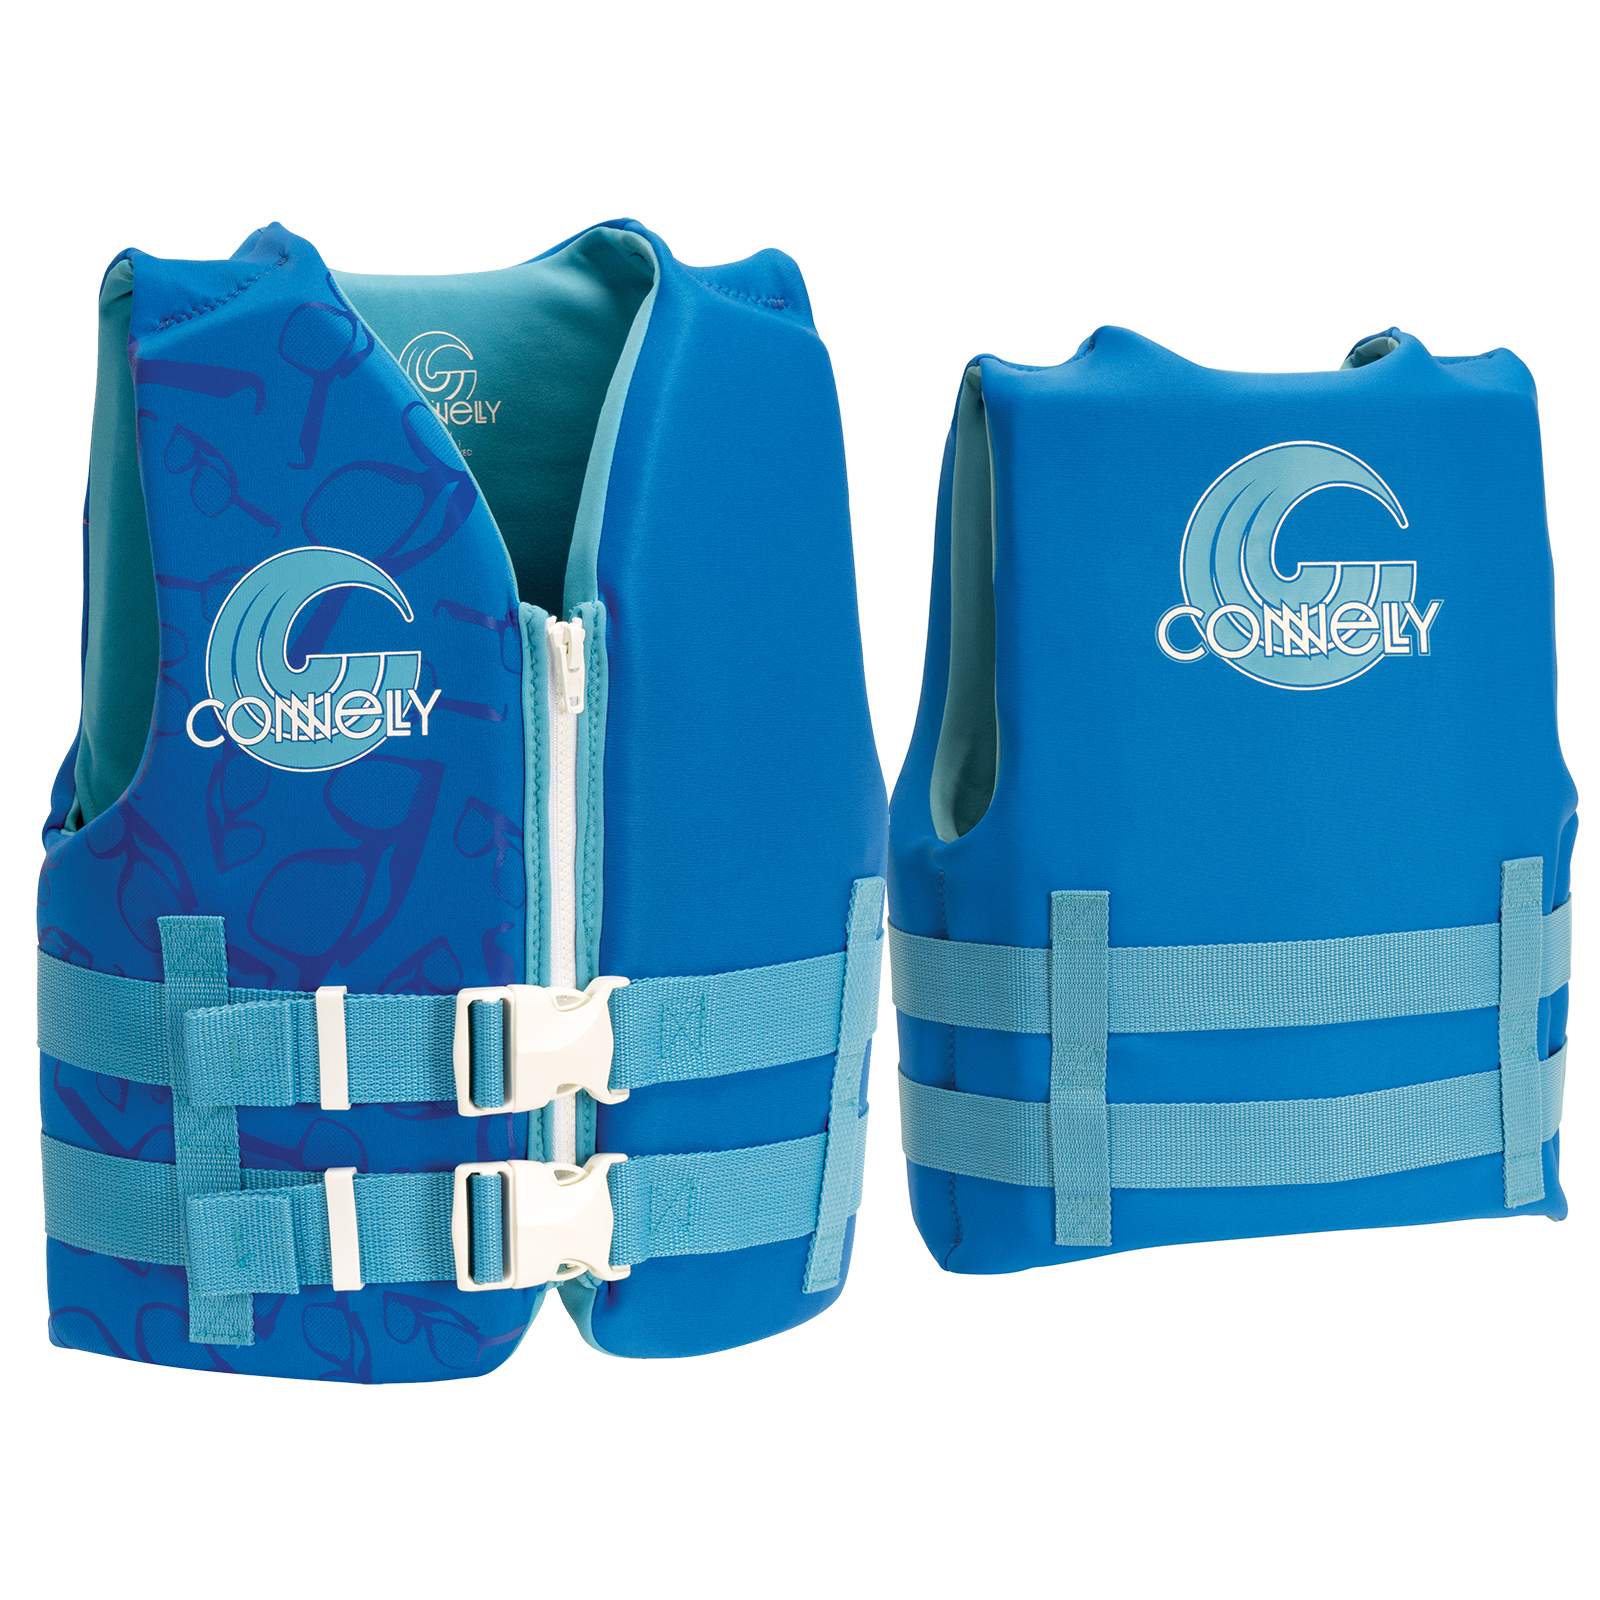 BOY'S PROMO NEO LIFE VEST - YOUTH 22-40KG CONNELLY 2019